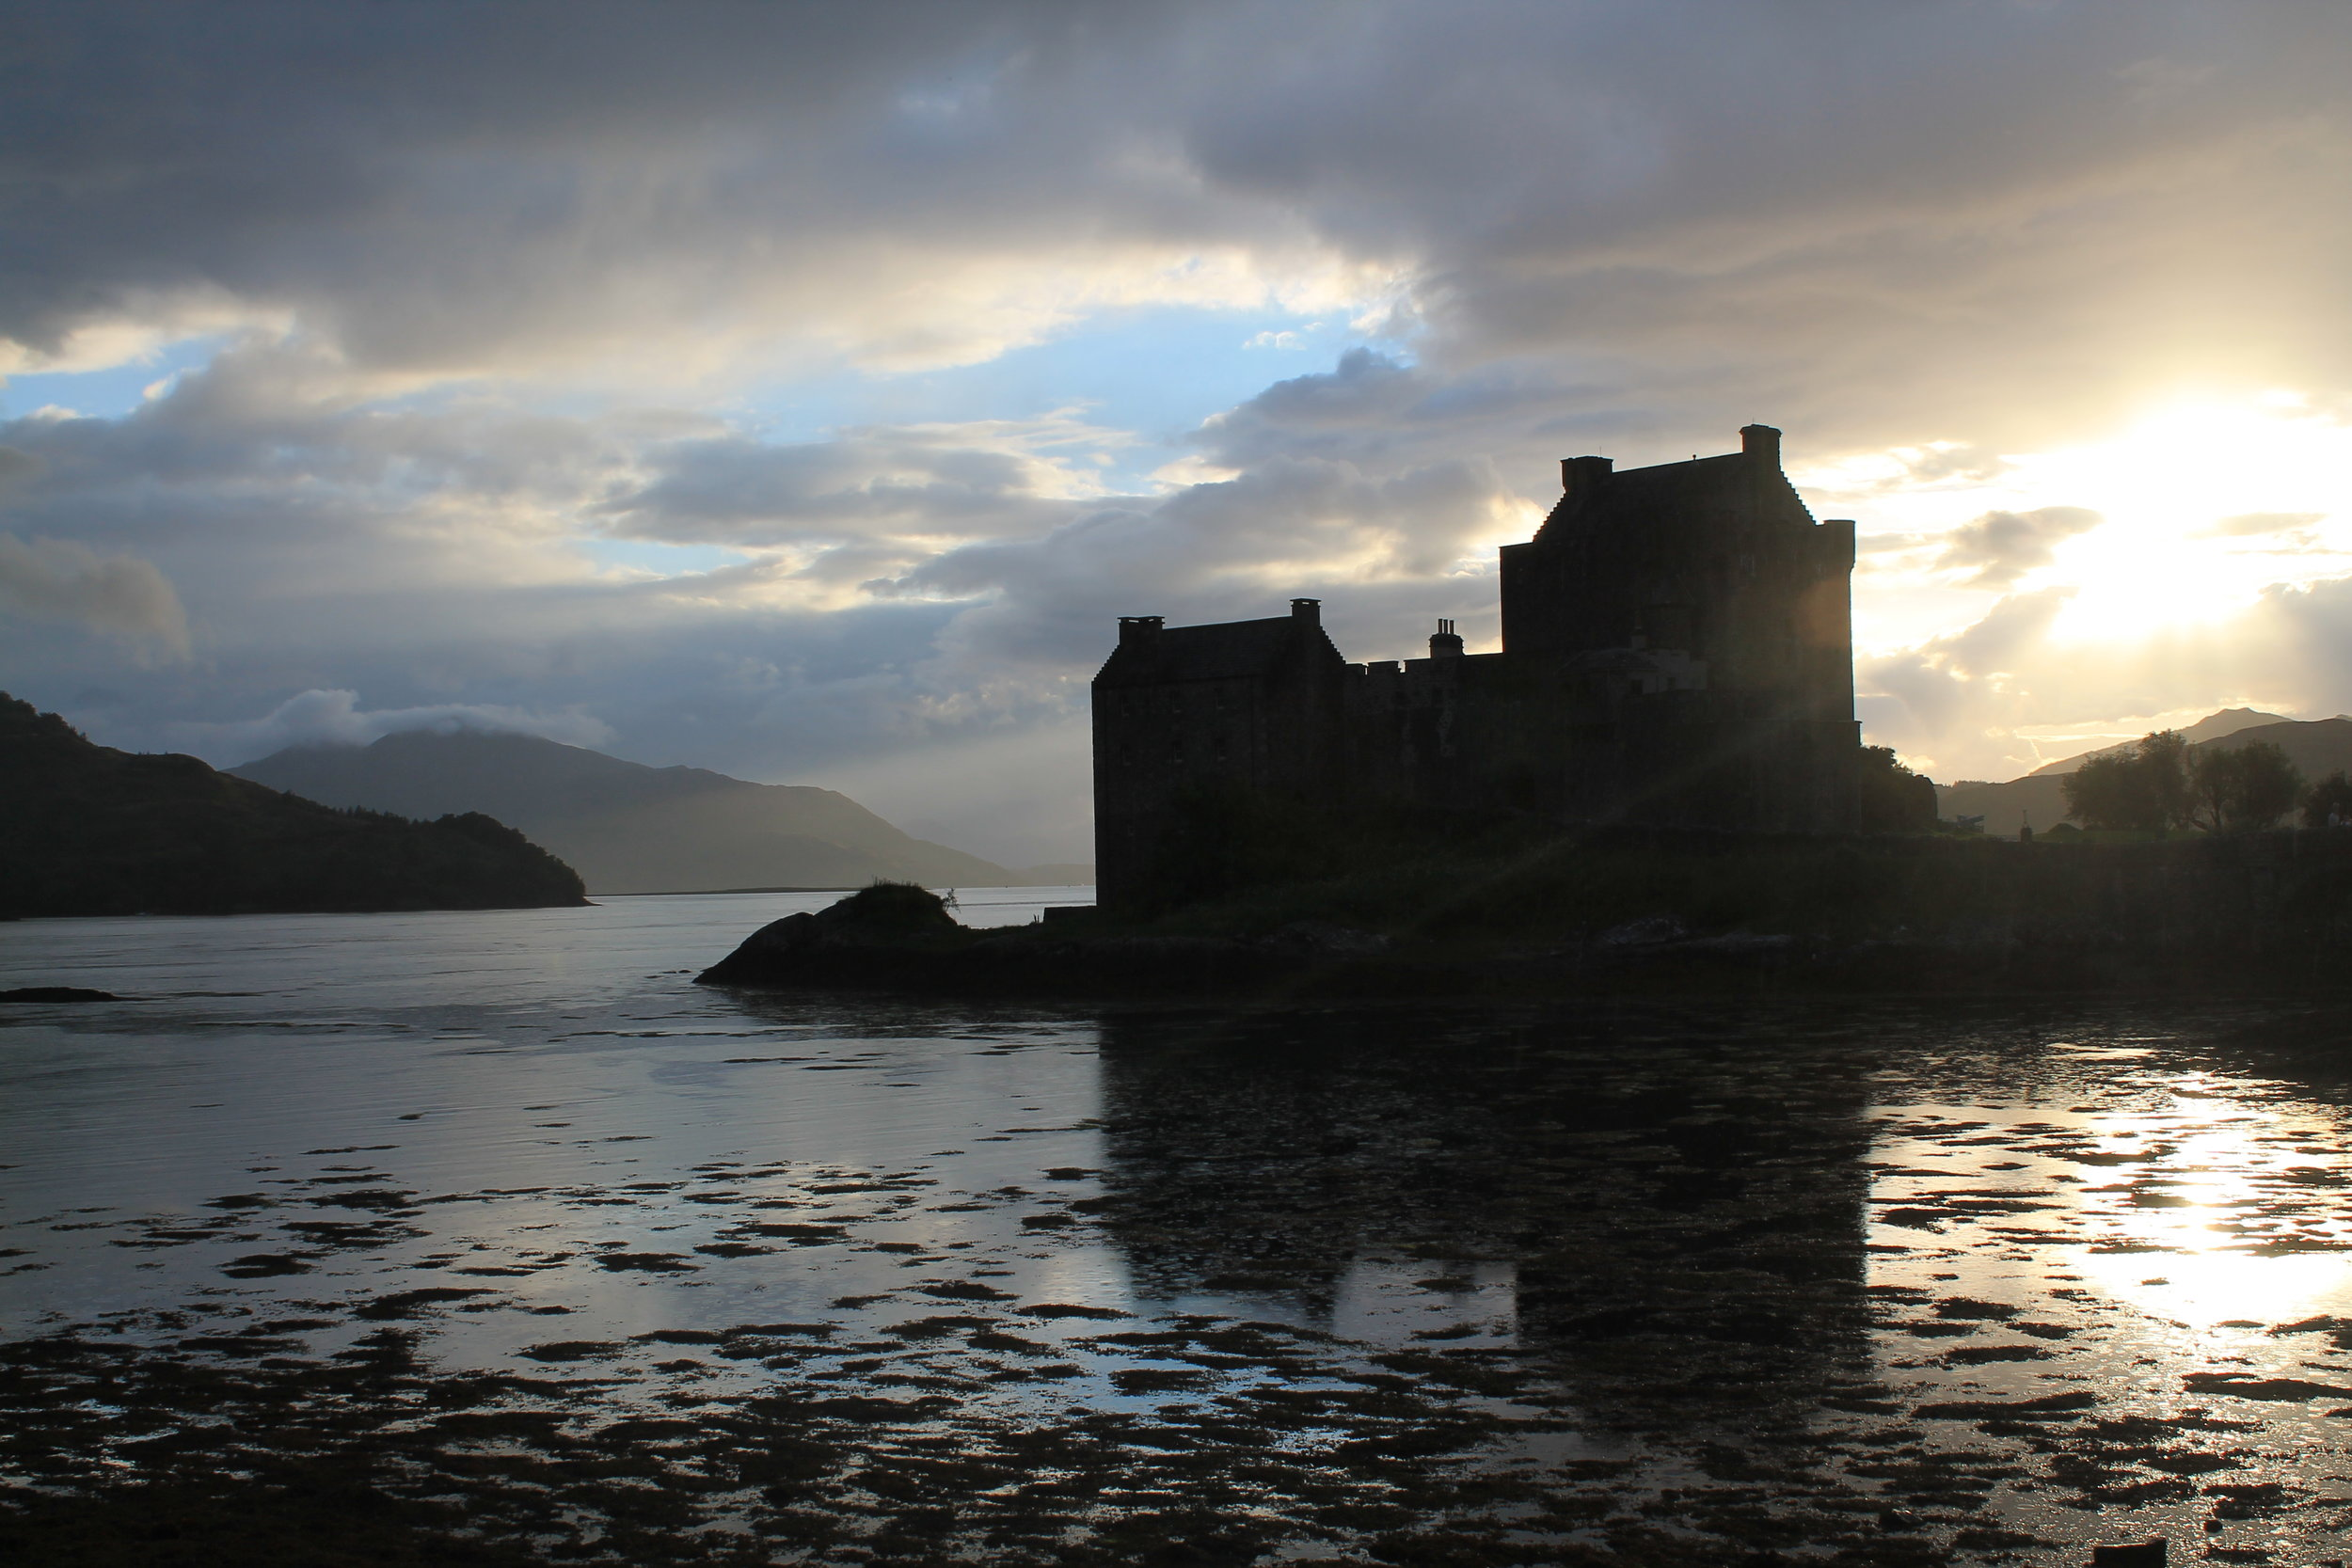 Eilean Donan Castle - Less than two hours away lies one of the most iconic images of Scotland. Situated on an island at the point where three great sea lochs meet, and surrounded by some majestic scenery, it truly is a sight to behold.